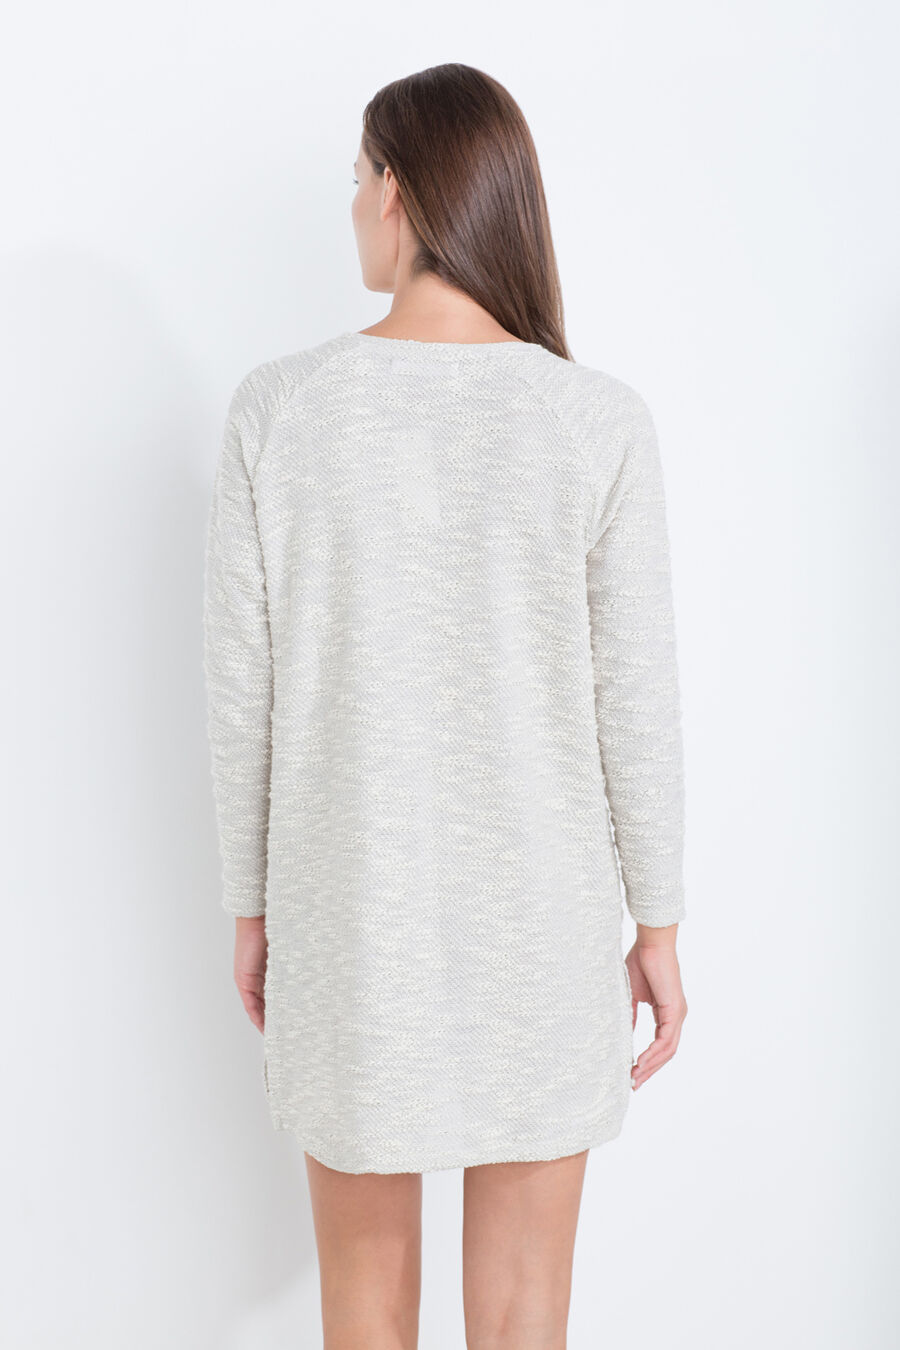 Short tricot nightgown